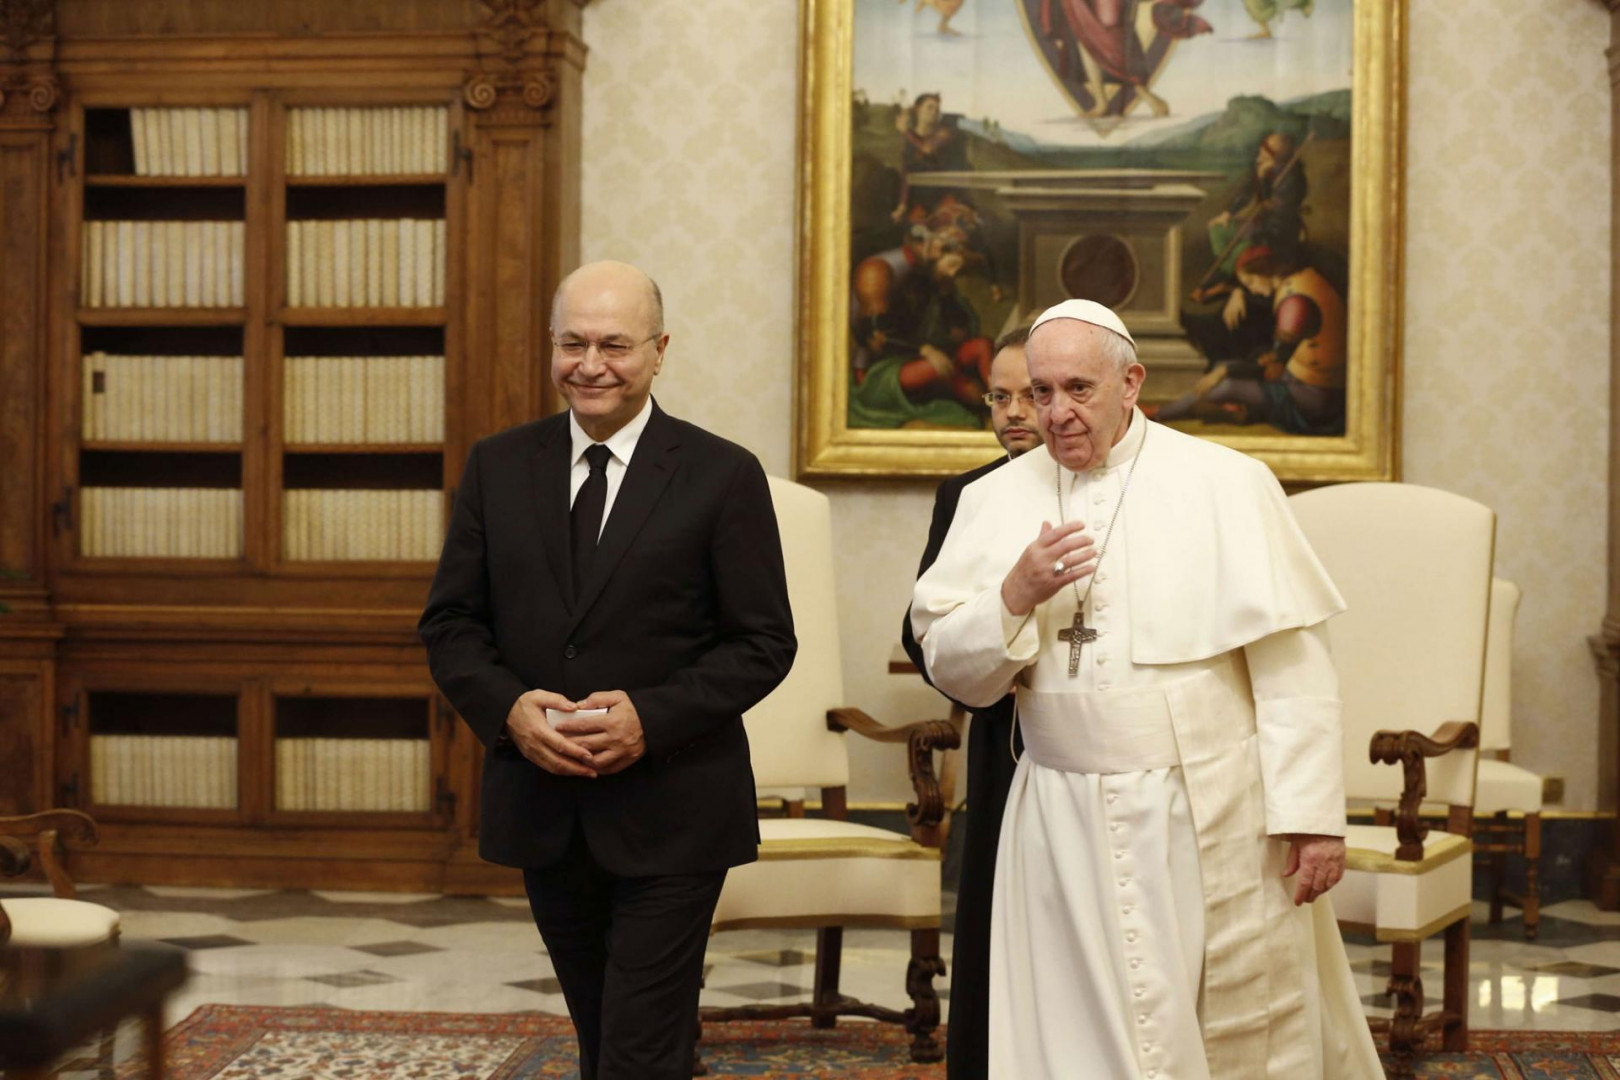 An Italian security delegation arrives in Iraq to assess the situation before the pope's visit